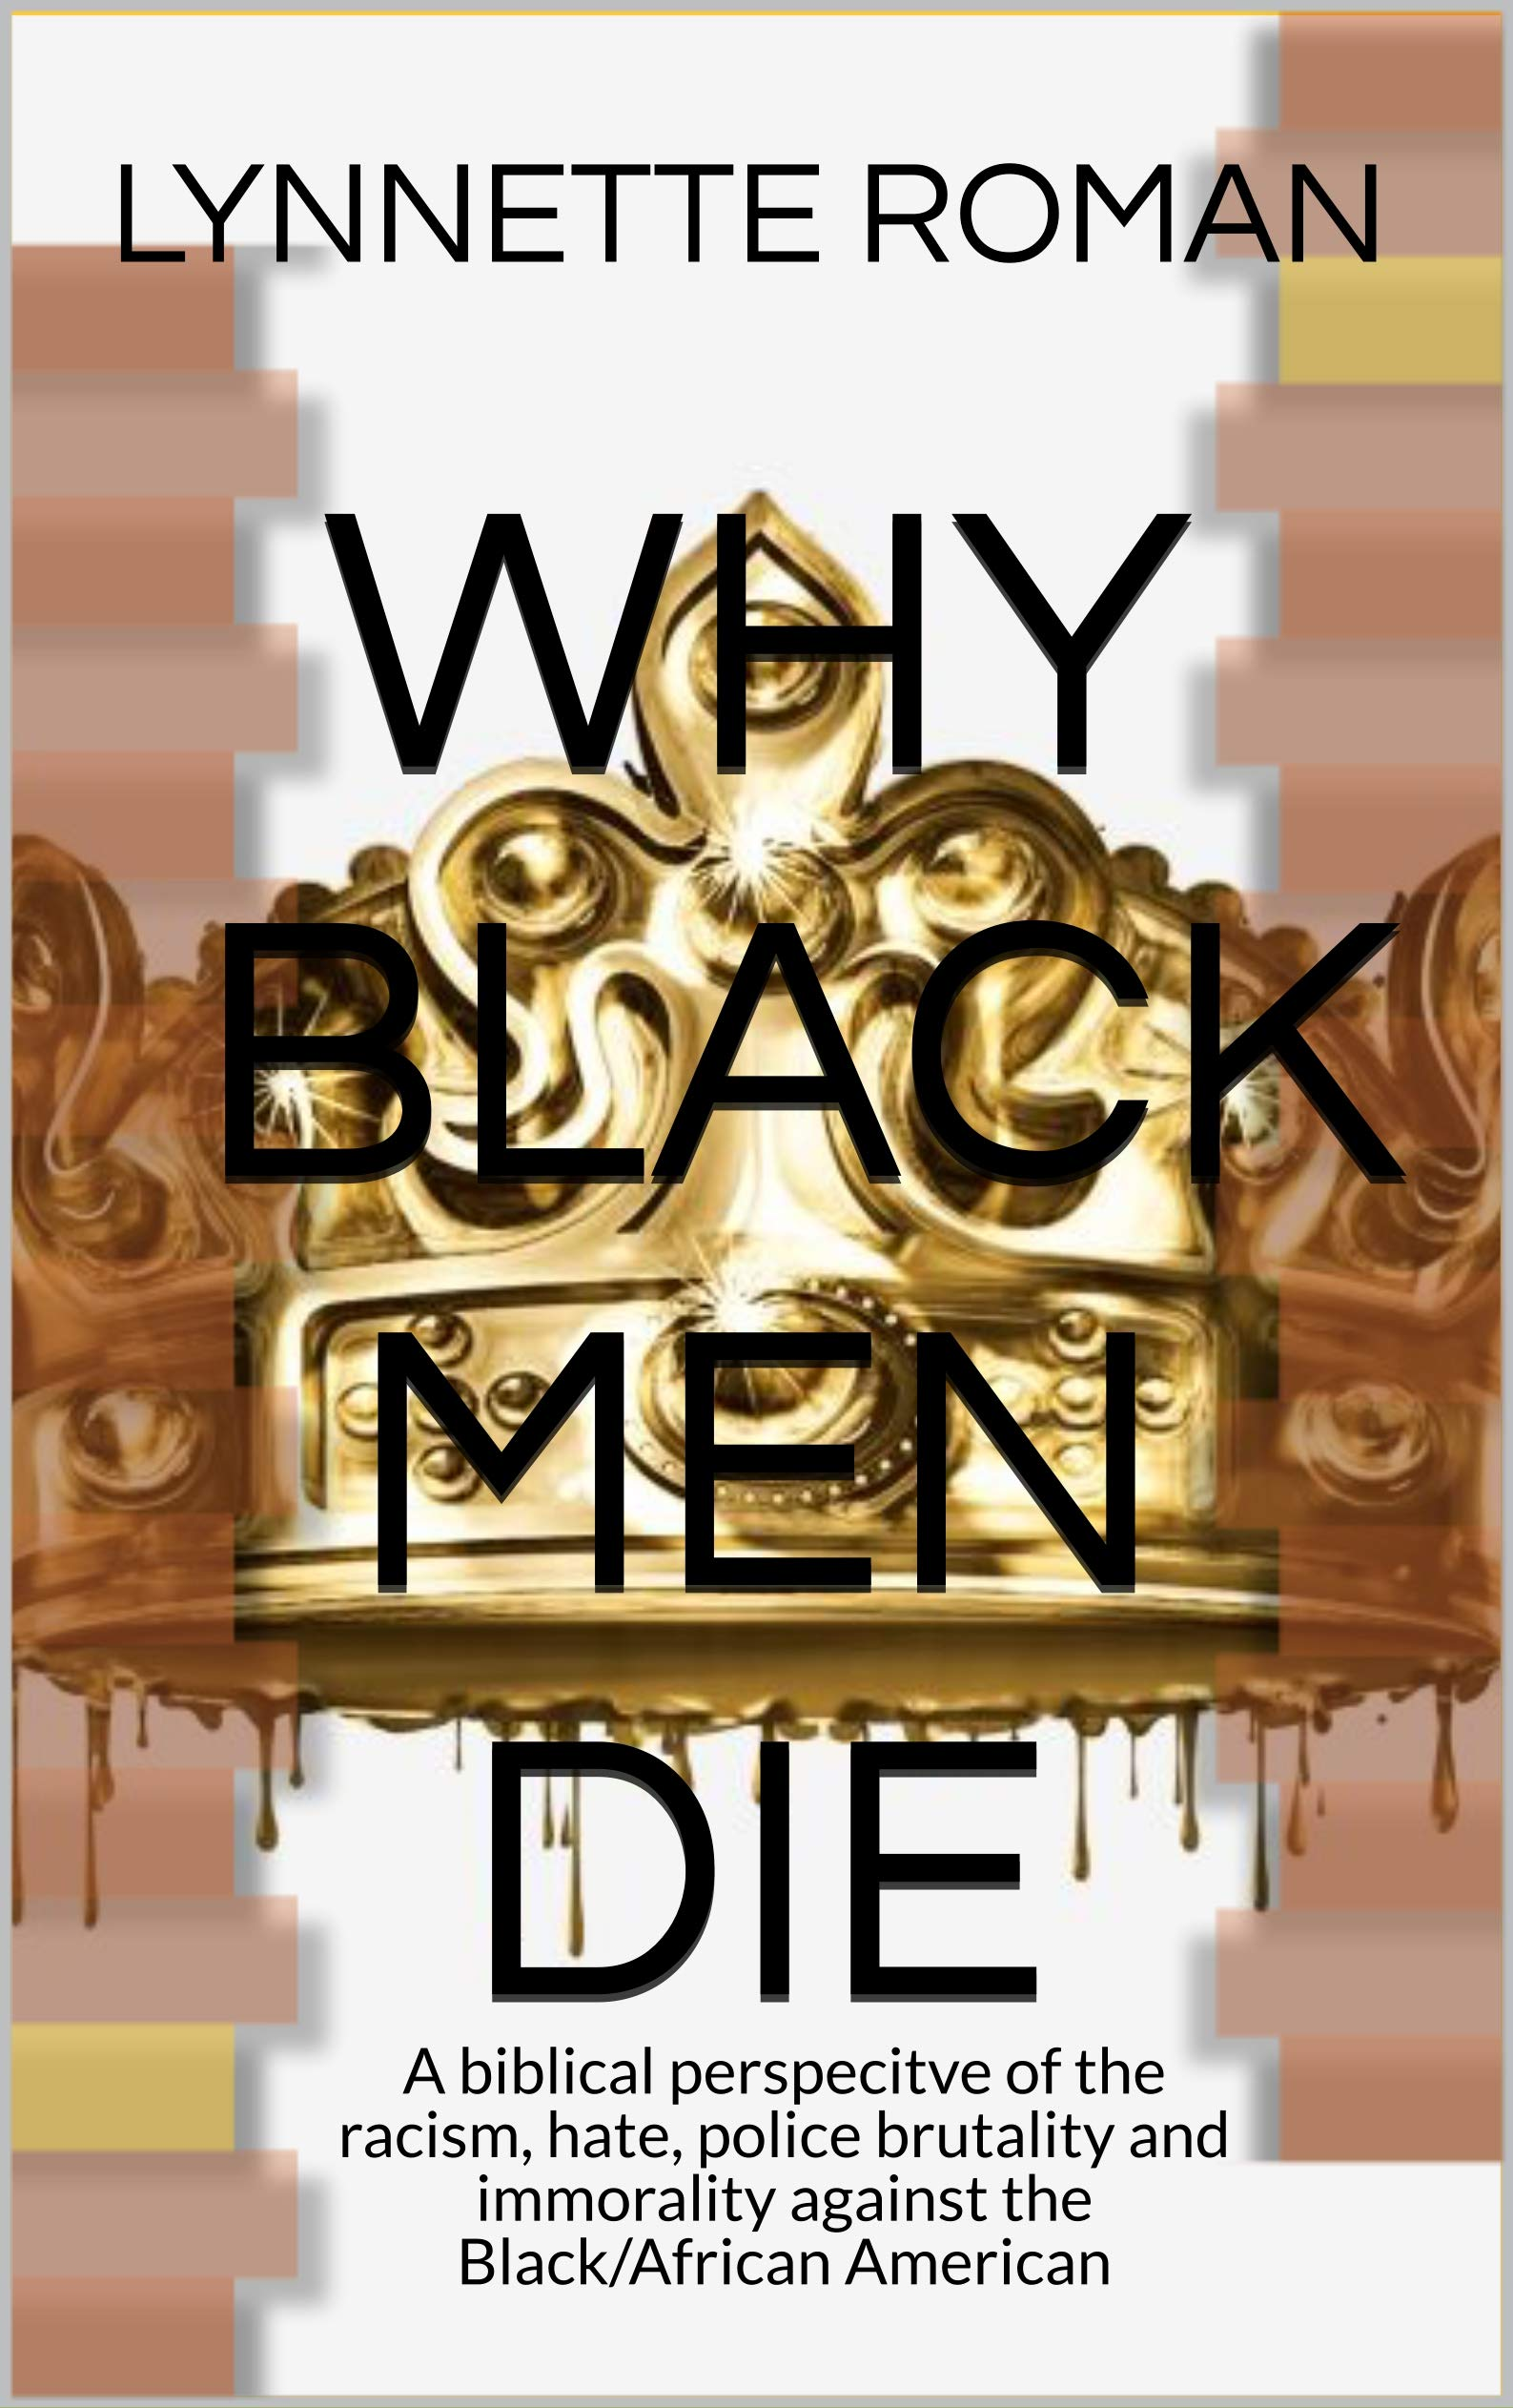 WHY BLACK MEN DIE: A biblical perspecitve of the racism, hate, police brutality and immorality against the Black/African American